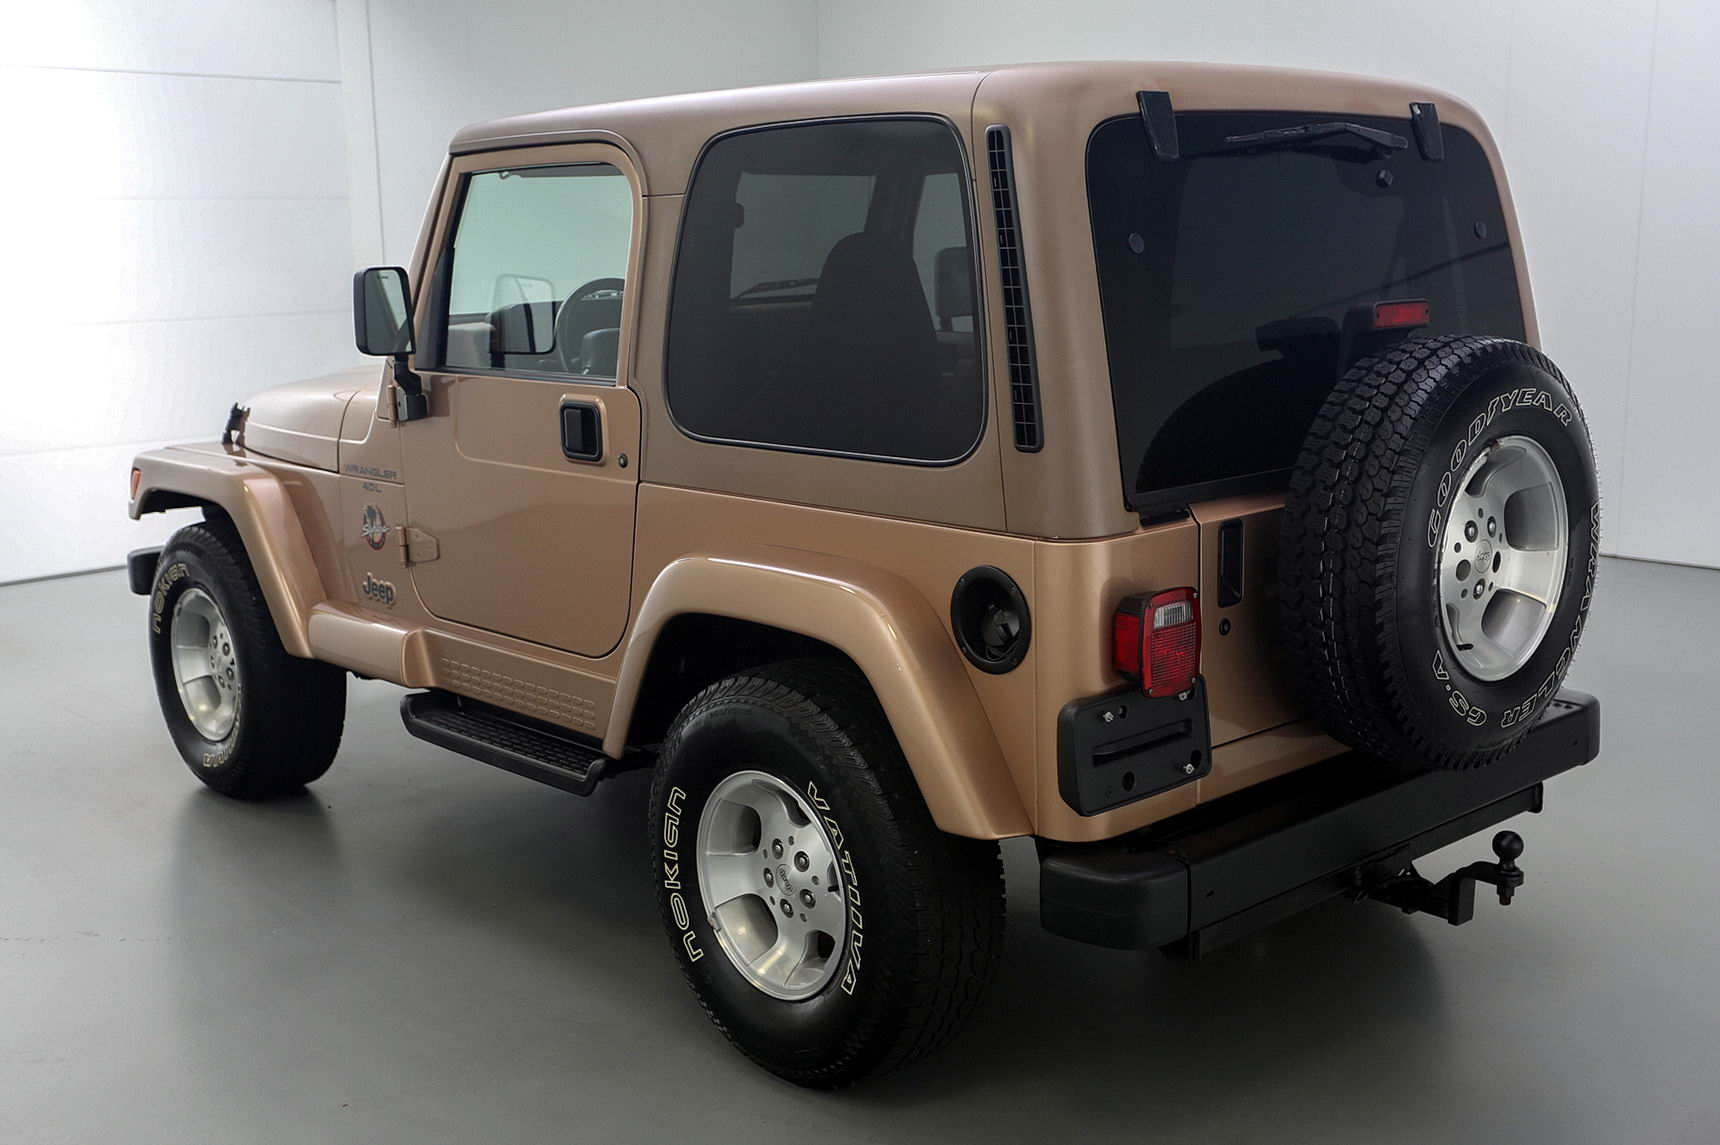 Soft Top Jeep >> 2000 Jeep Wrangler Sahara 4×4 | Brutal Motors